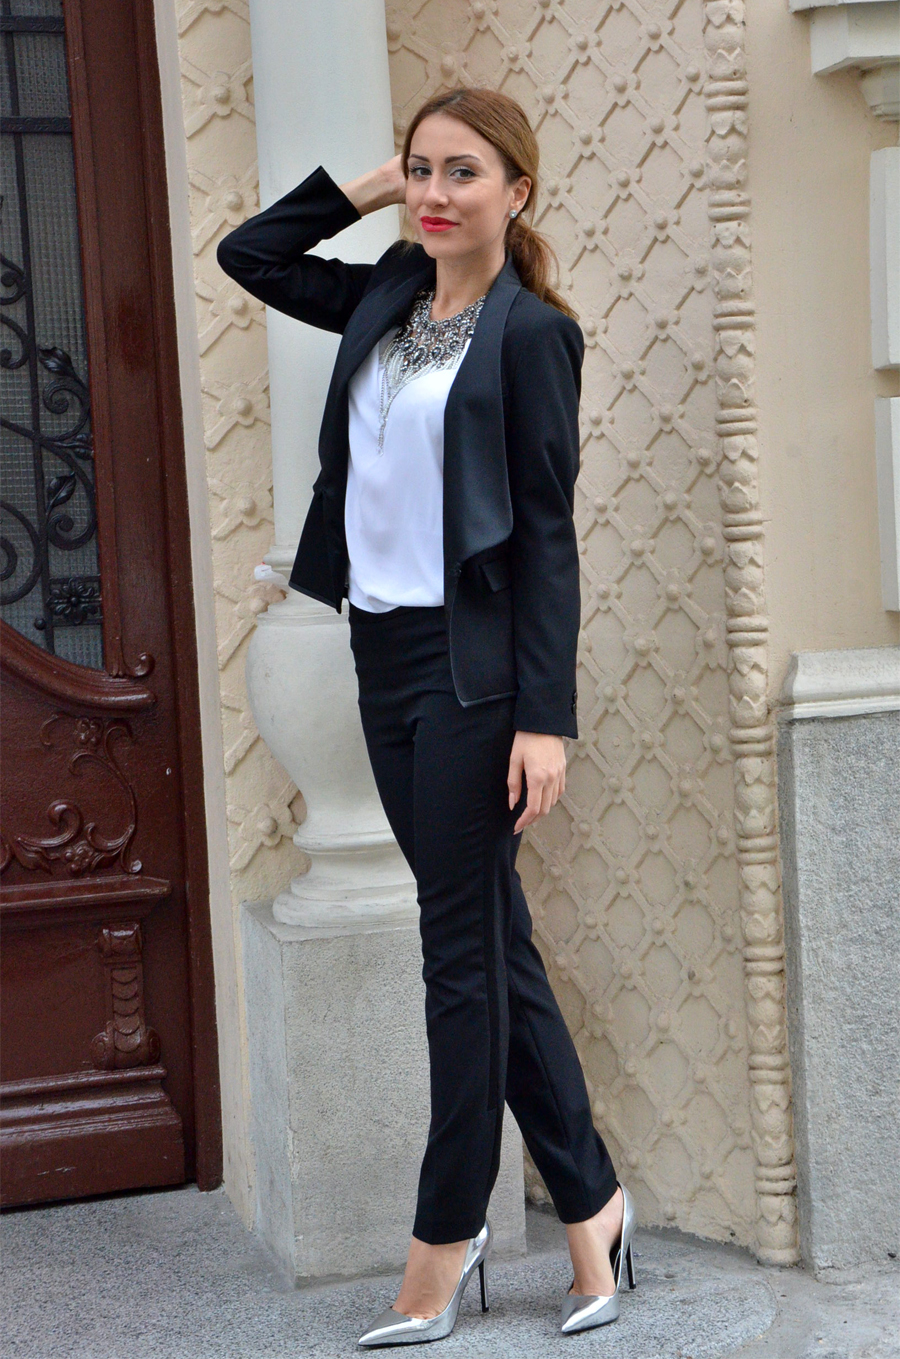 What to wear for New Year's Eve: Women's tuxedo Outfit / Stasha Fashion by Anastasija Milojevic